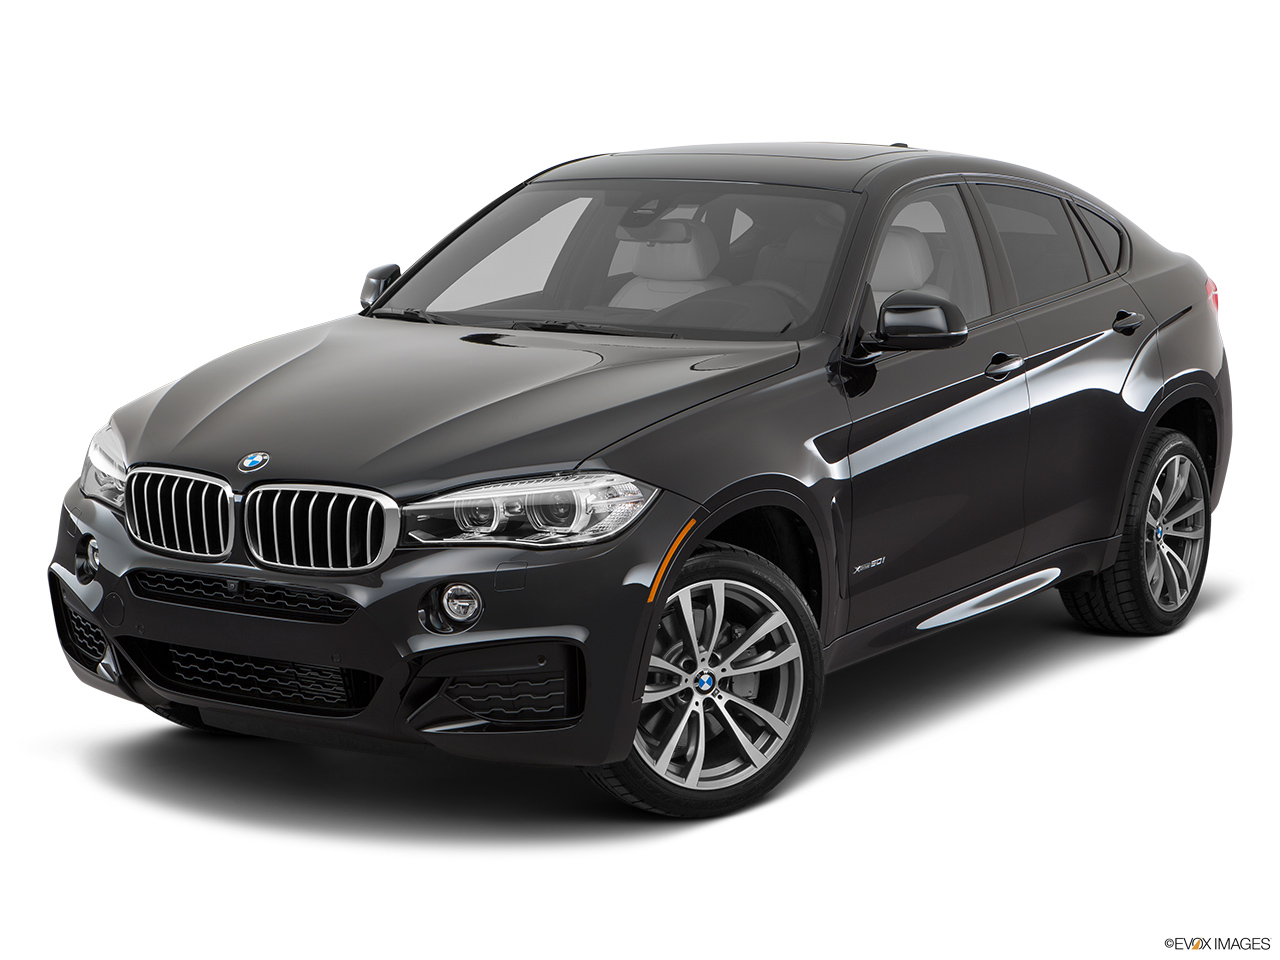 Bmw X6 2016 Xdrive50i In Uae New Car Prices Specs